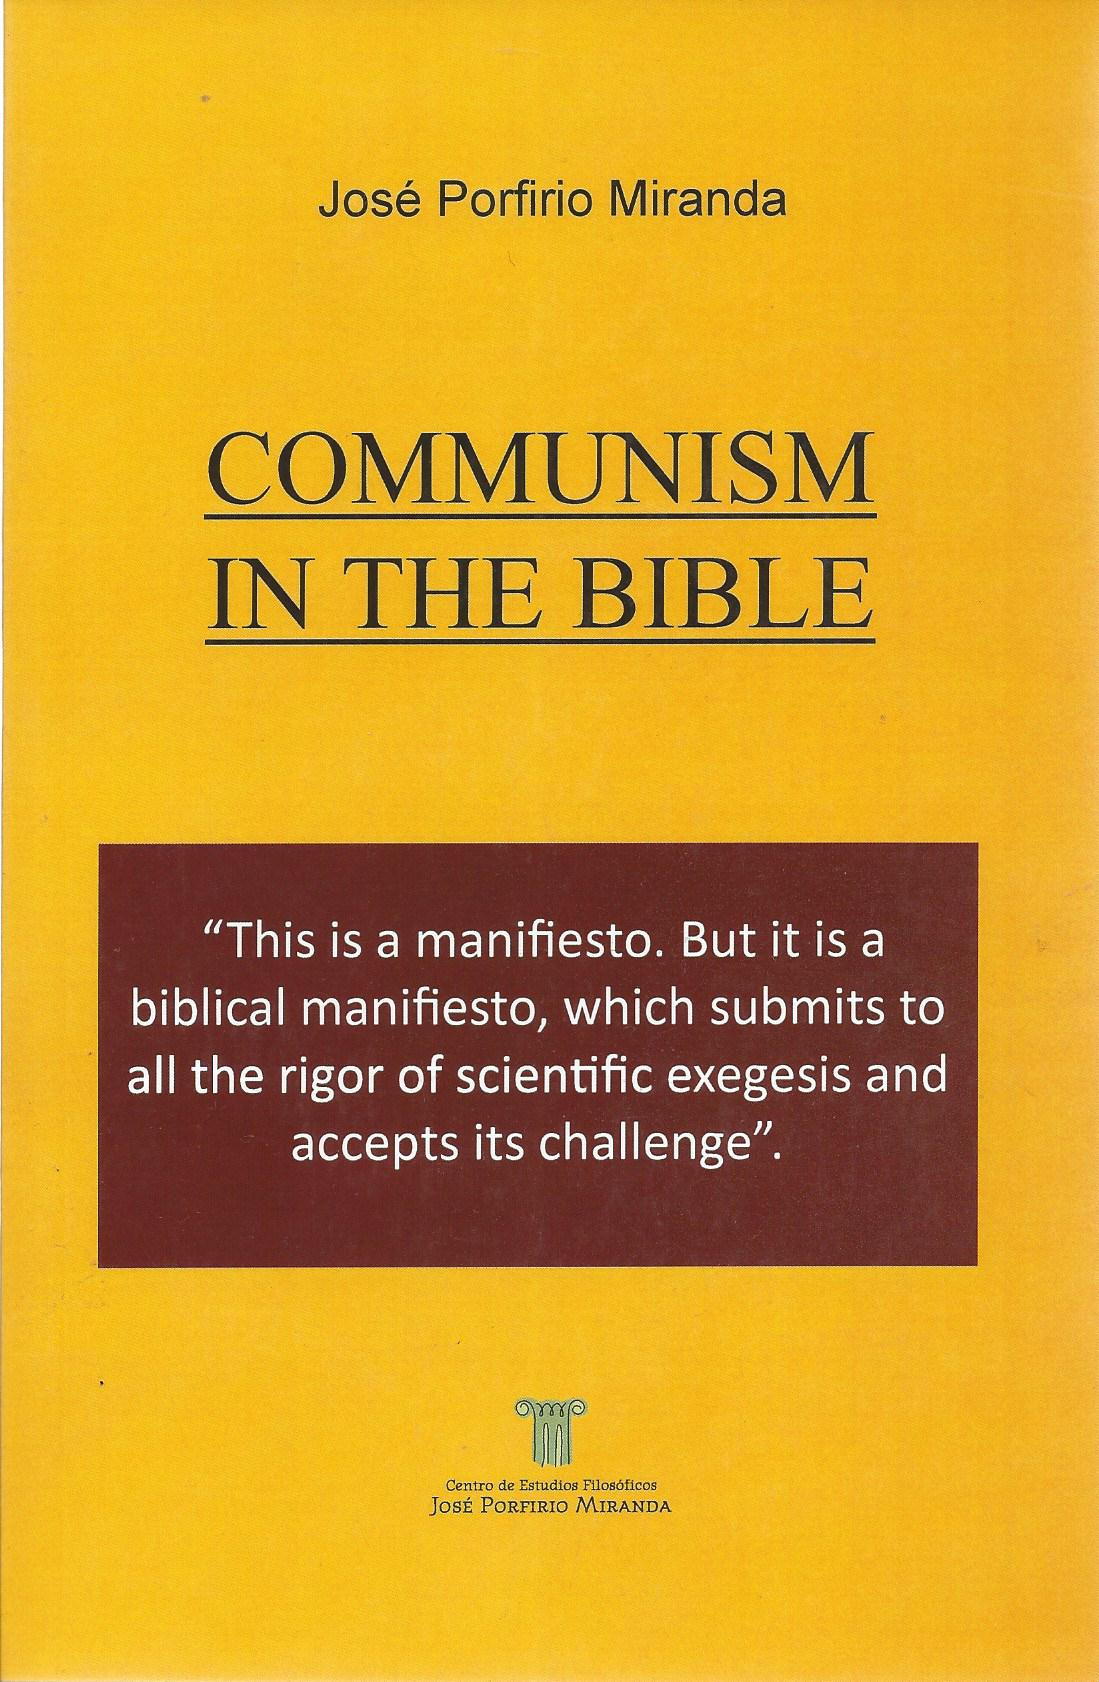 communism-in-the-bible-2013